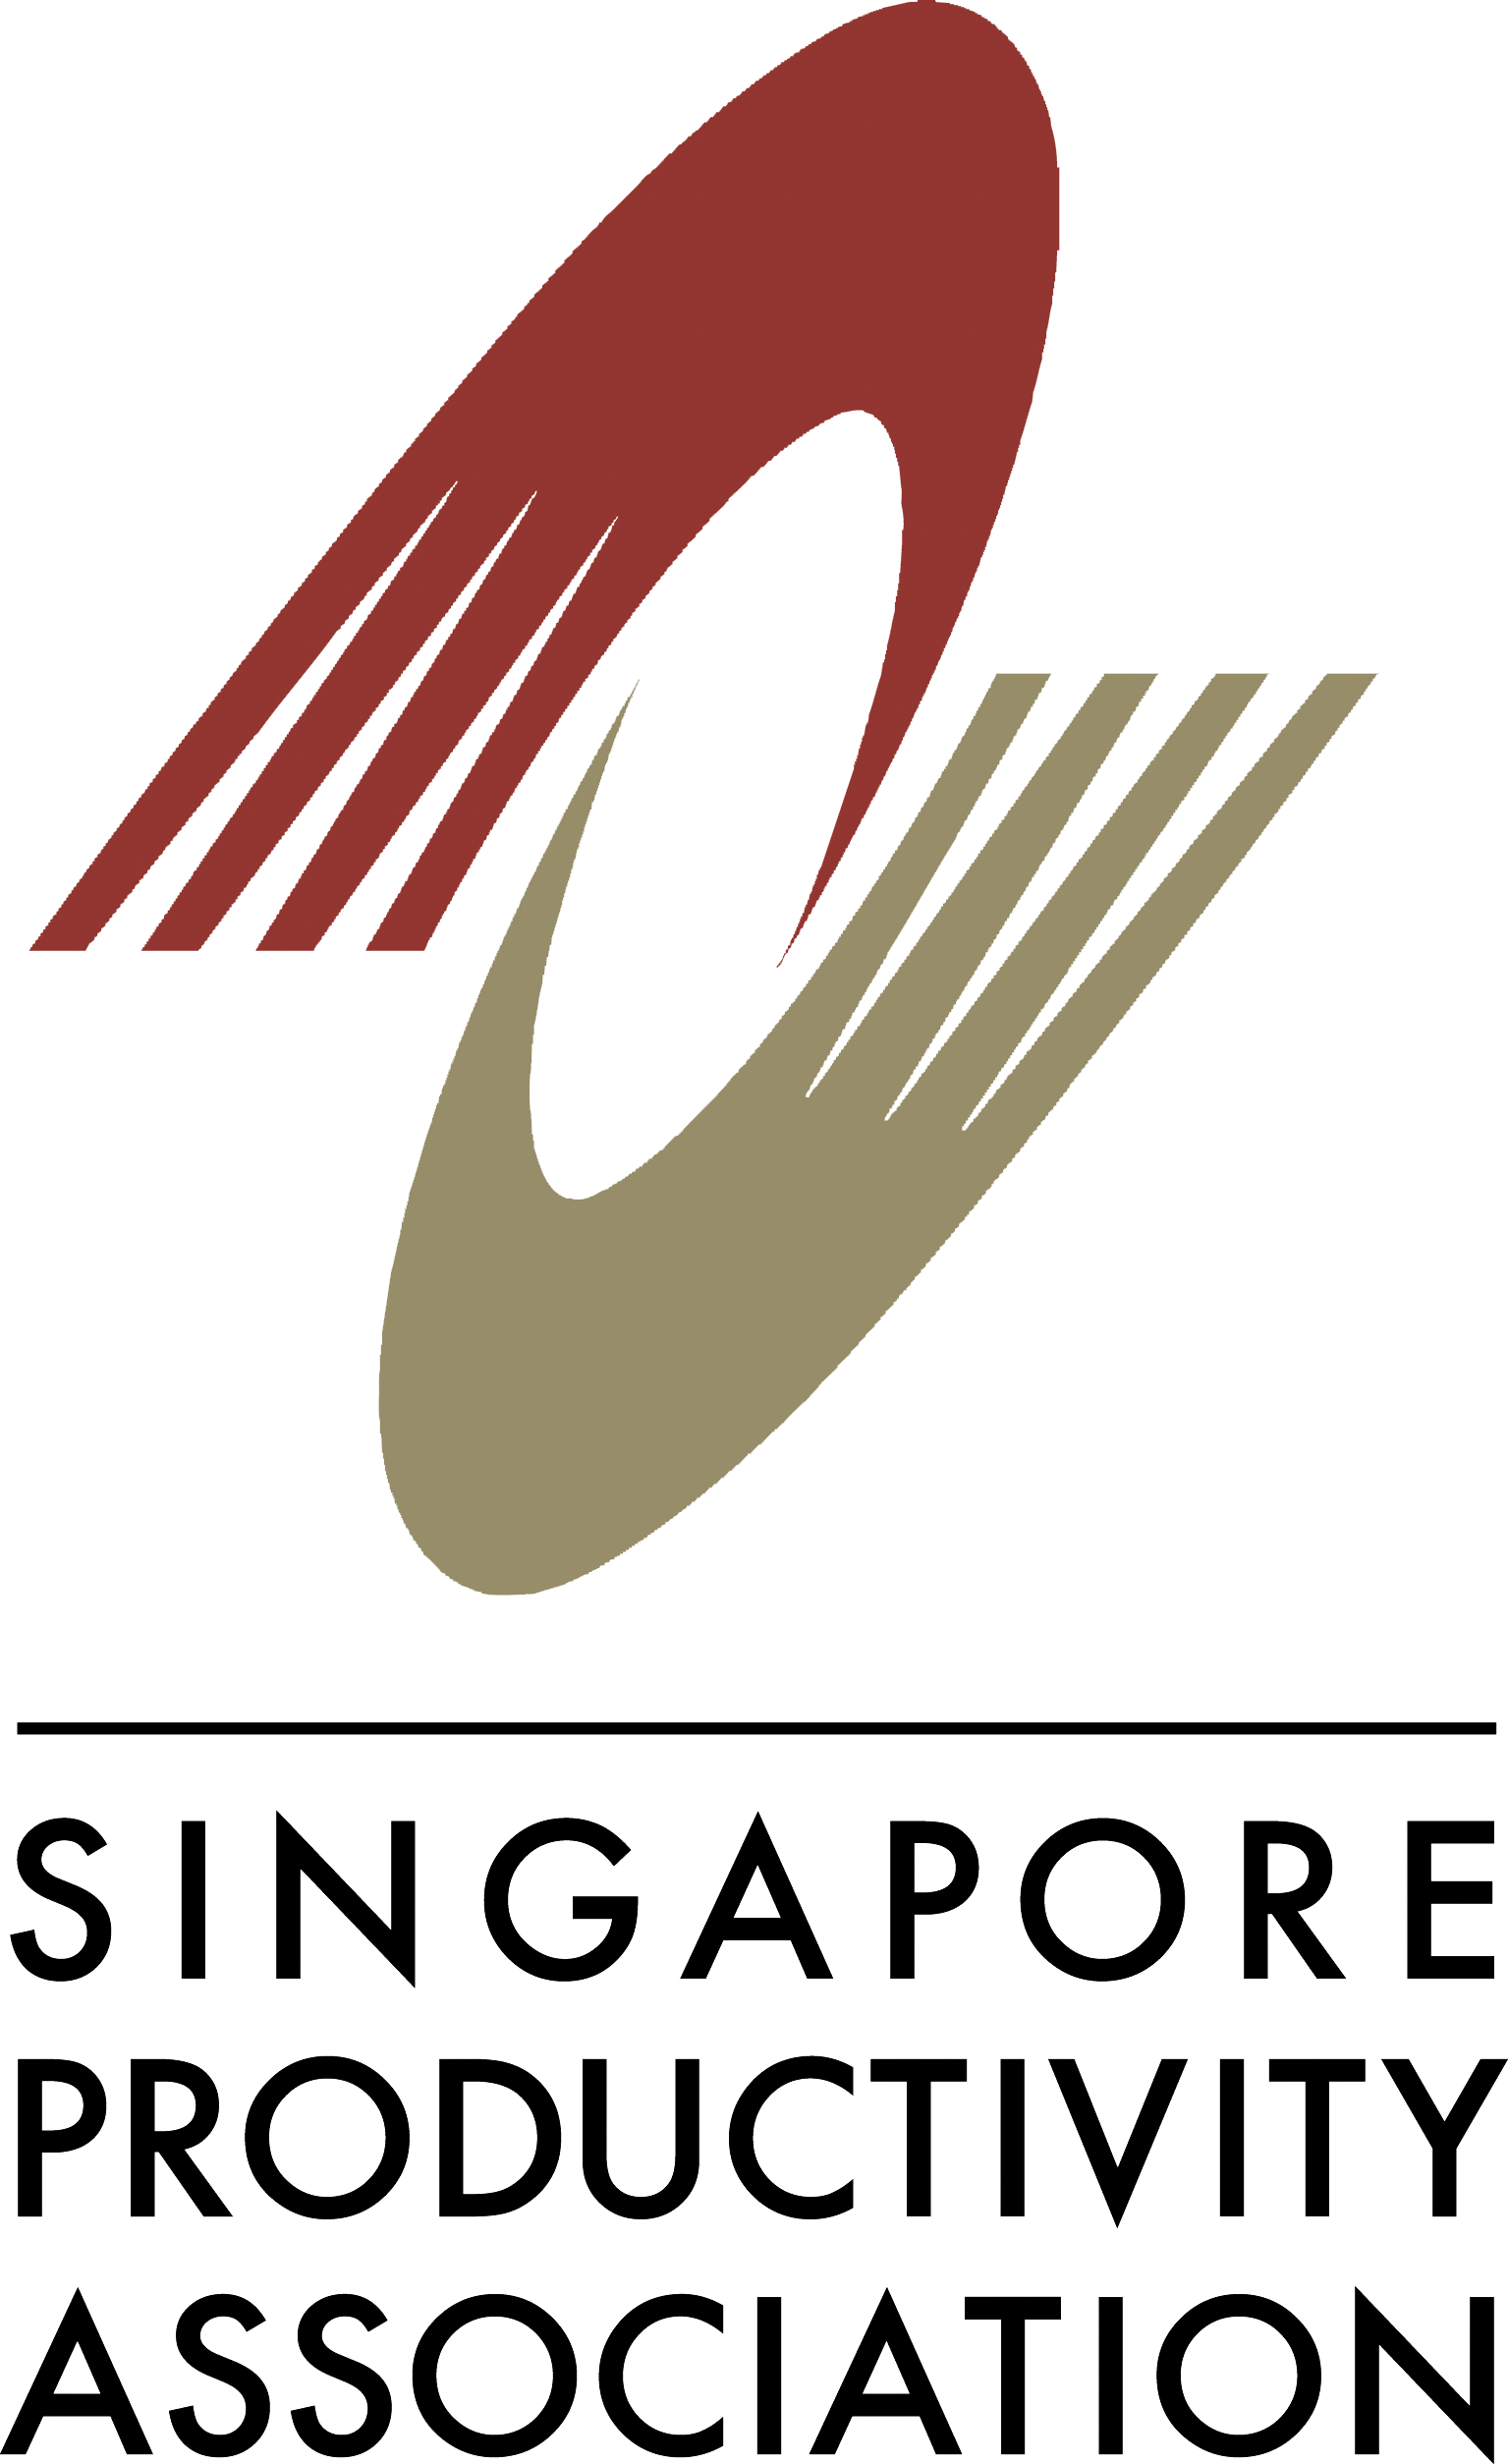 Singapore Productivity Association